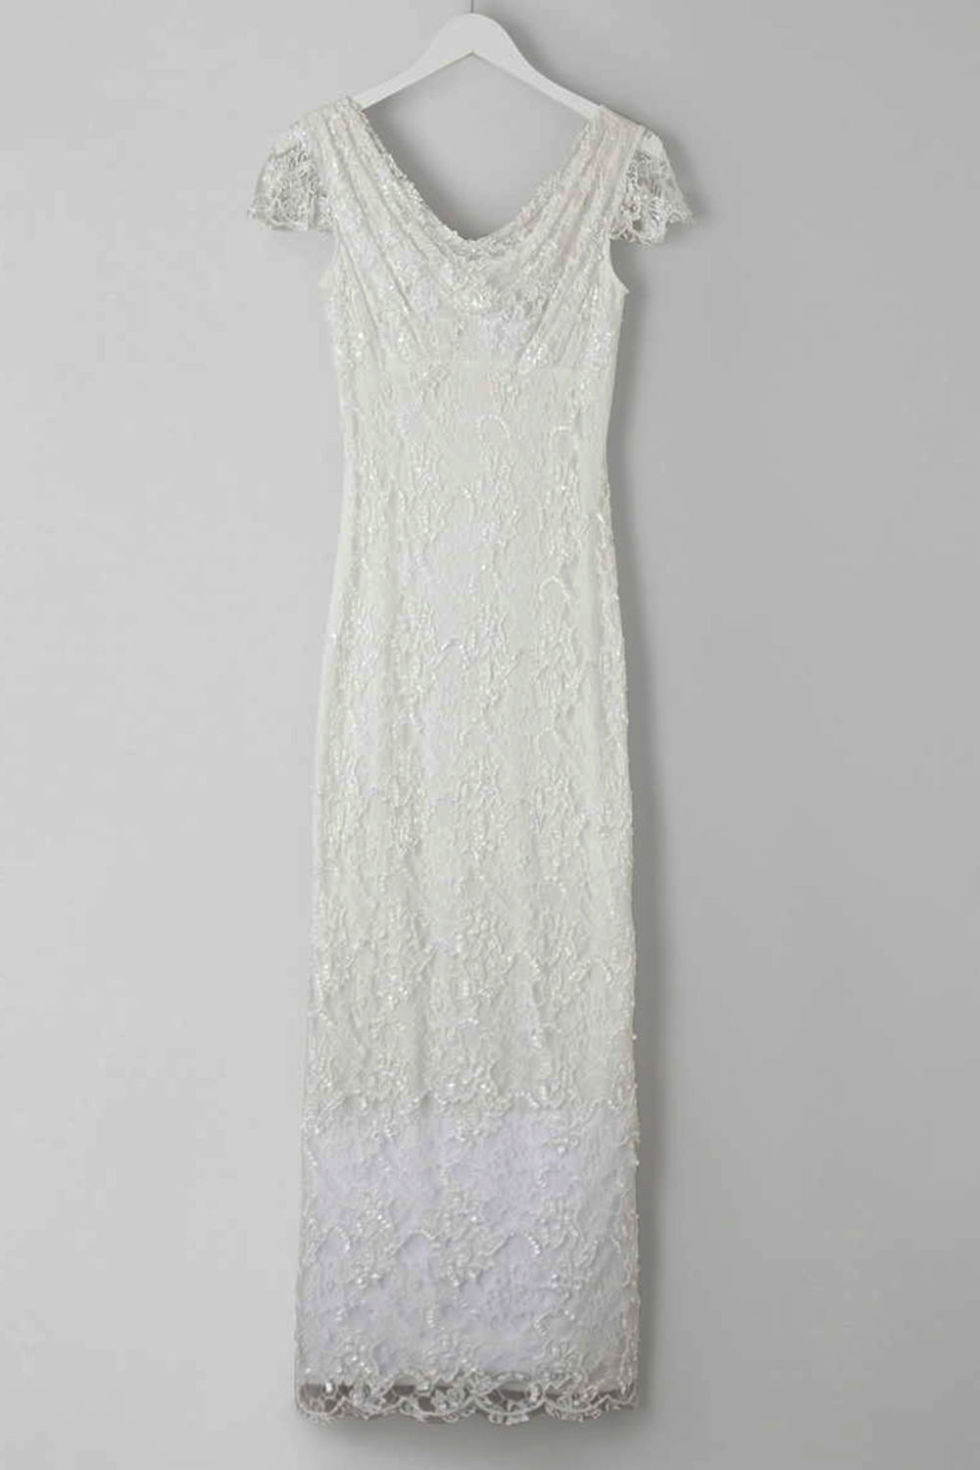 Fancy Bhs Dressing Gown Ornament - Wedding and flowers ispiration ...